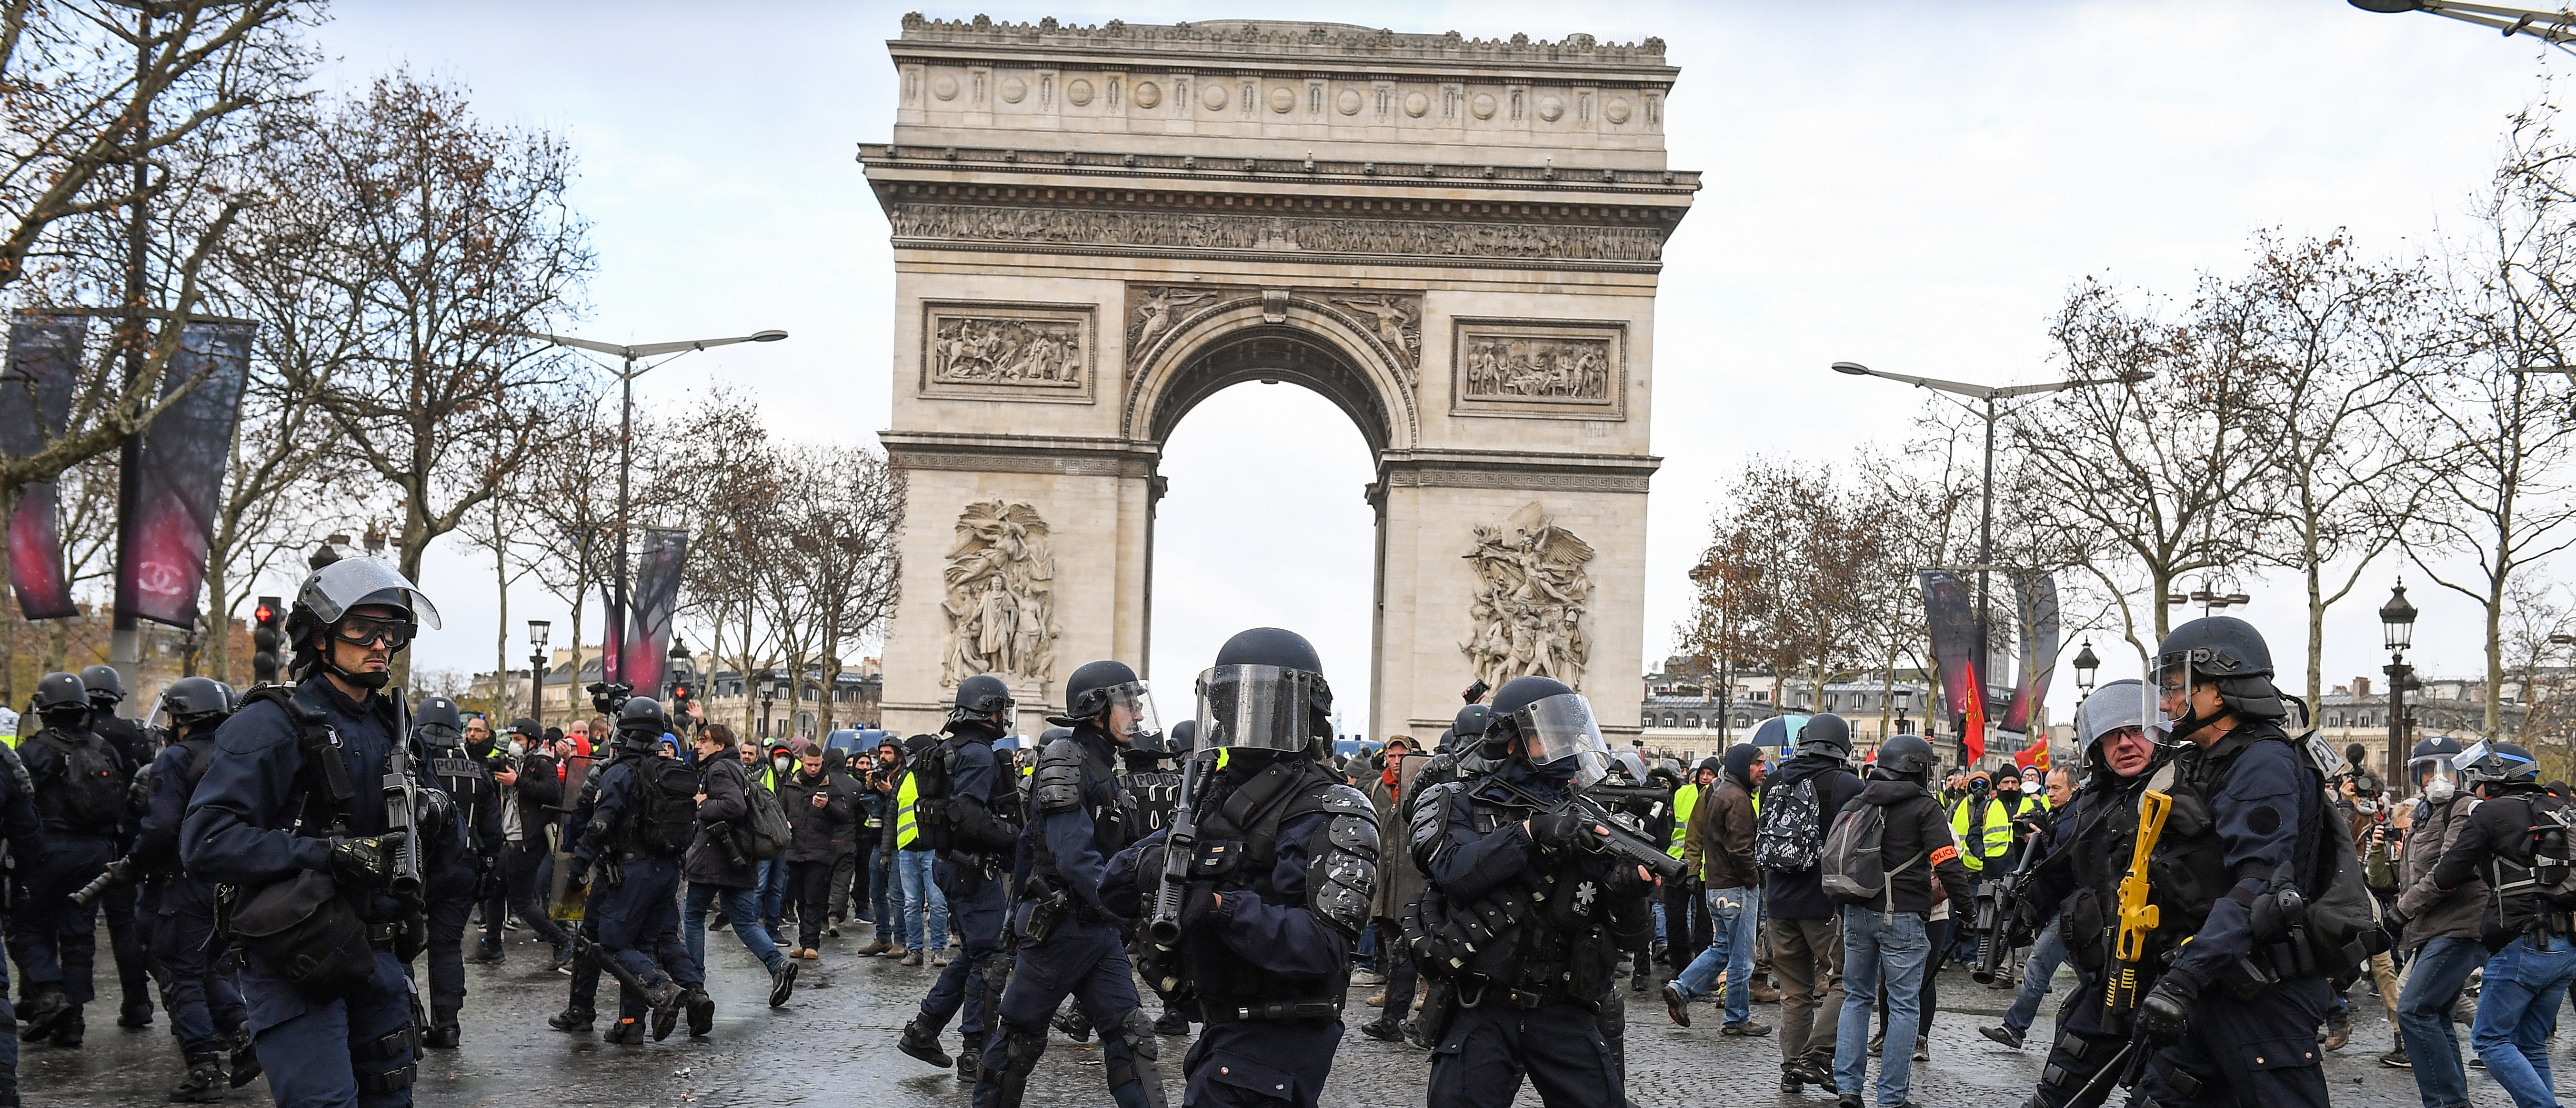 PARIS, FRANCE - DECEMBER 08: French police stand gaurd as demonstrators take part in the demonstration of the yellow vests at the Arc de Triomphe on December 8, 2018 in Paris France. ''Yellow Vests' ('Gilet Jaunes' or 'Vestes Jaunes') is a protest movement without political affiliation which was inspired by opposition to a new fuel tax. After a month of protests, which have wrecked parts of Paris and other French cities, there are fears the movement has been infiltrated by 'ultra-violent' protesters. Today's protest has involved at least 5,000 demonstrators gathering in the Parisian city centre with police having made over 200 arrests so far. (Photo by Jeff J Mitchell/Getty Images)